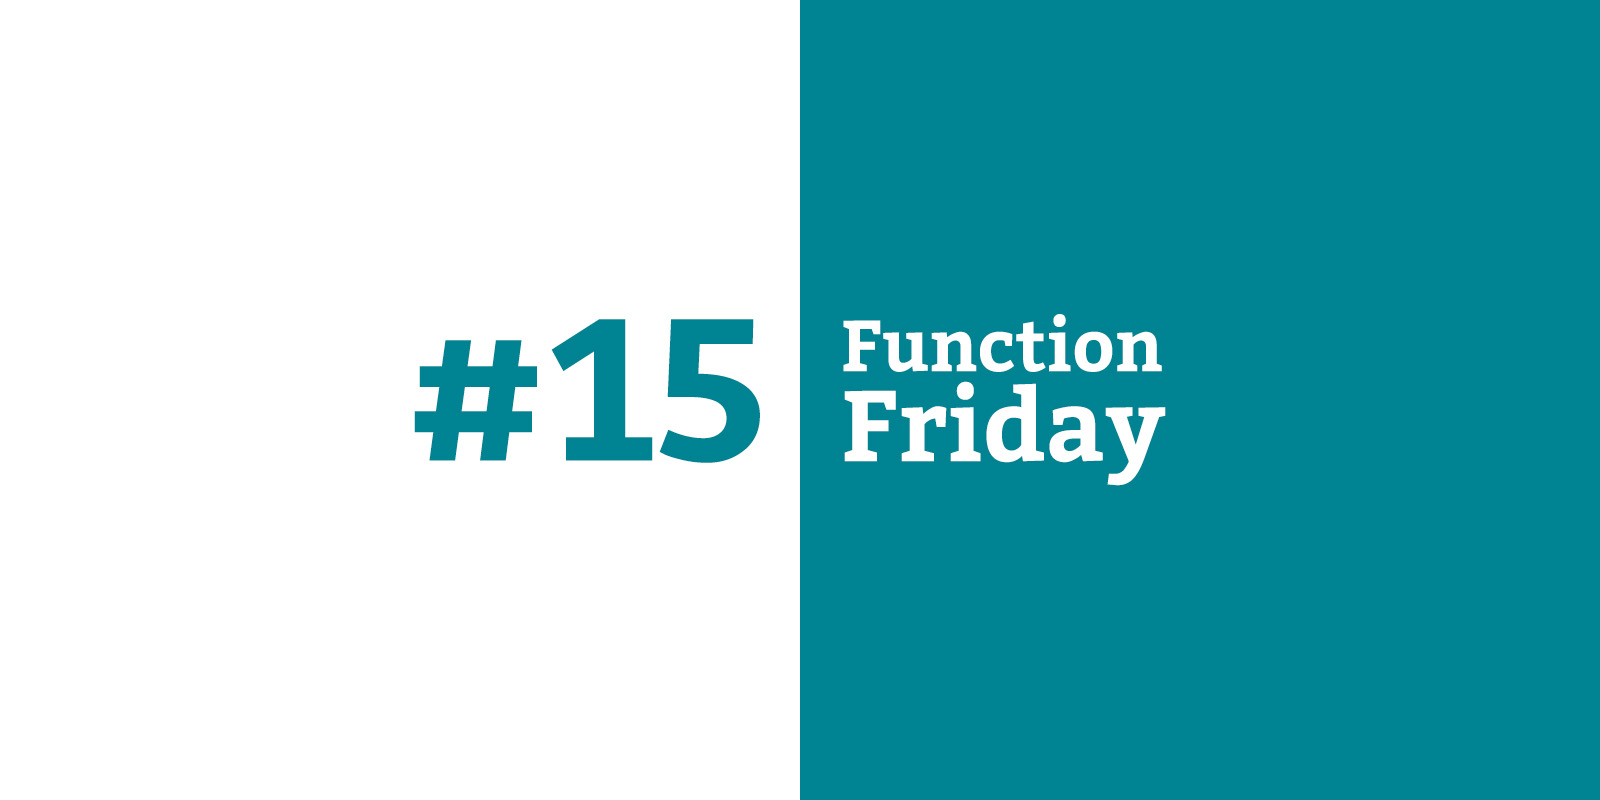 Function Friday #15